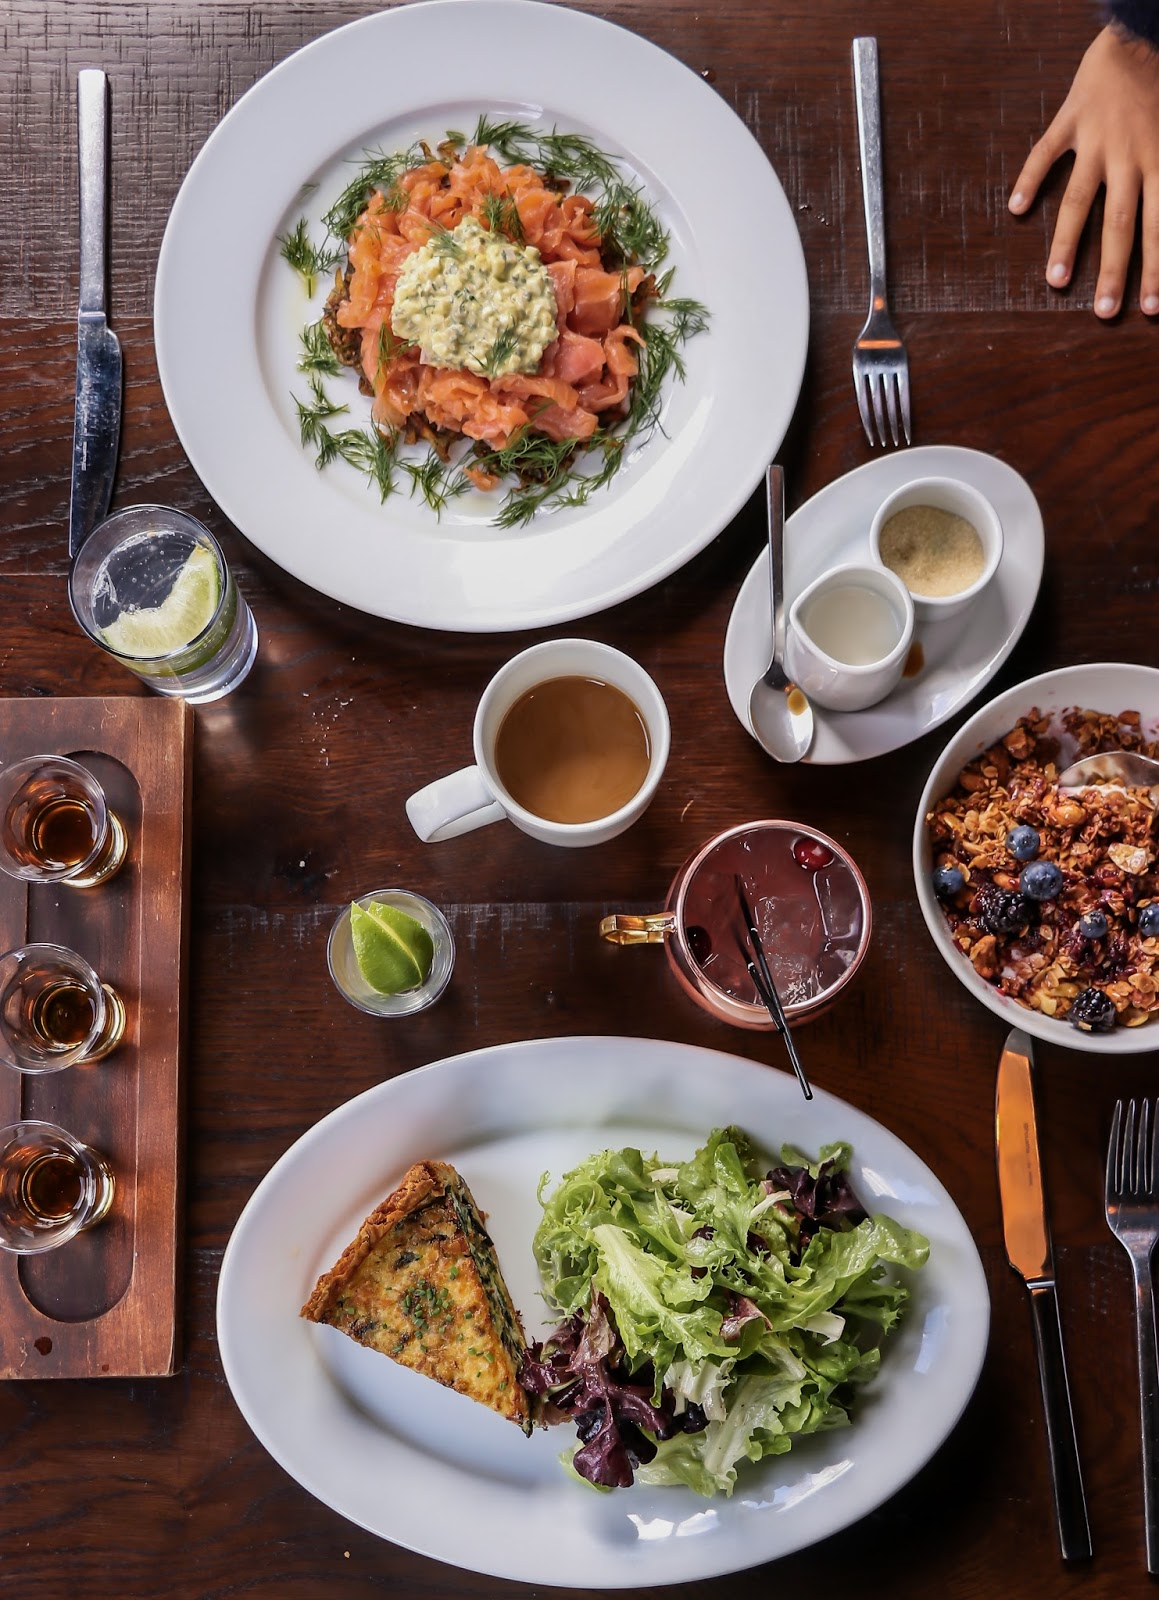 district distilling, Mothers day brunch, DC eats, yelp approved, Dc food blogger, restaurant review, lifestyle, merican fare, distillery in DC, myriad musings